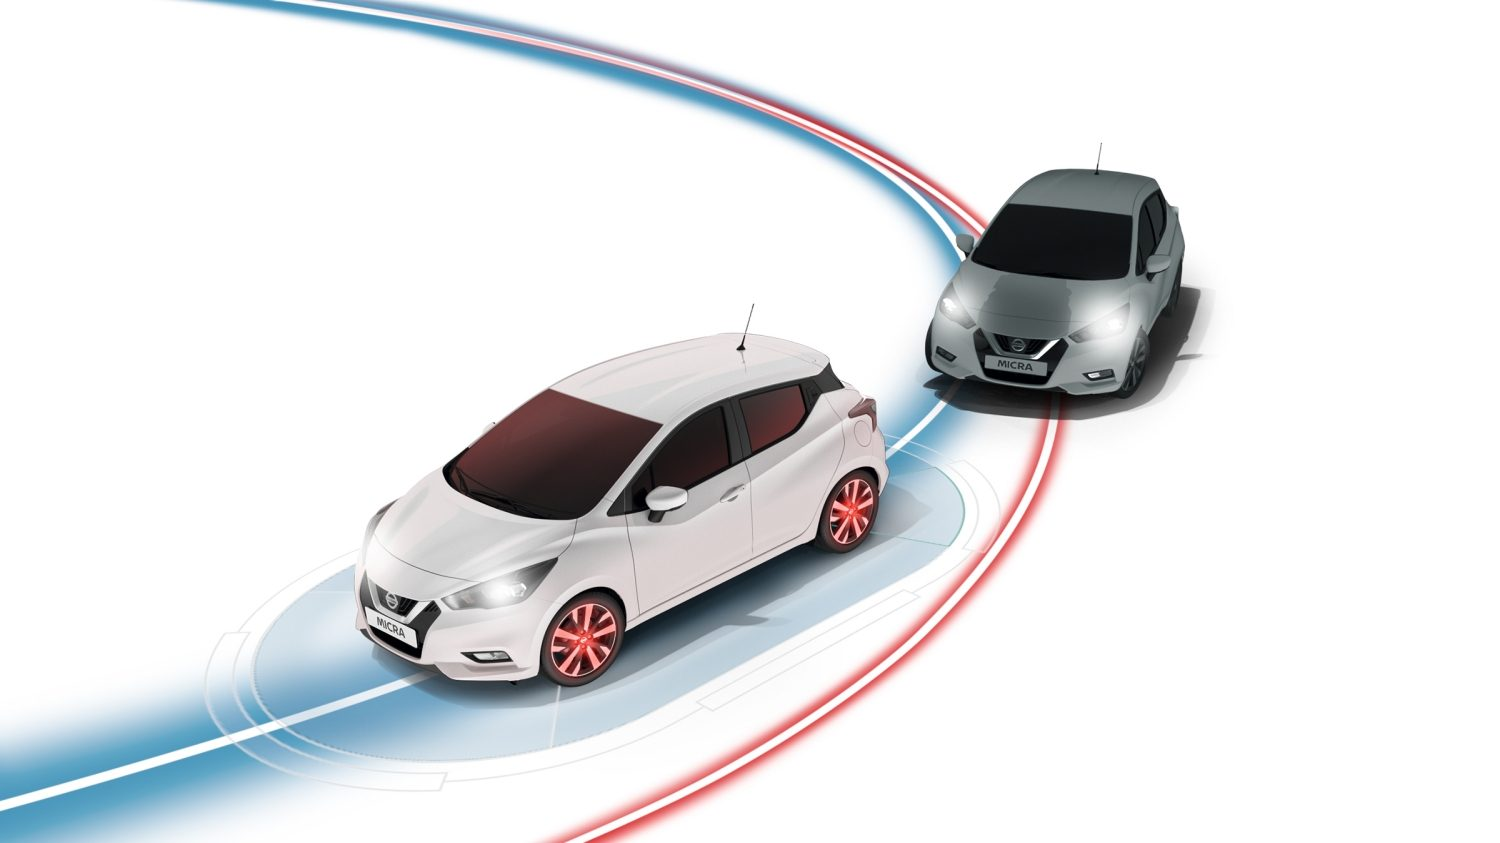 Nissan MICRA Intelligent spårkontroll Illustration